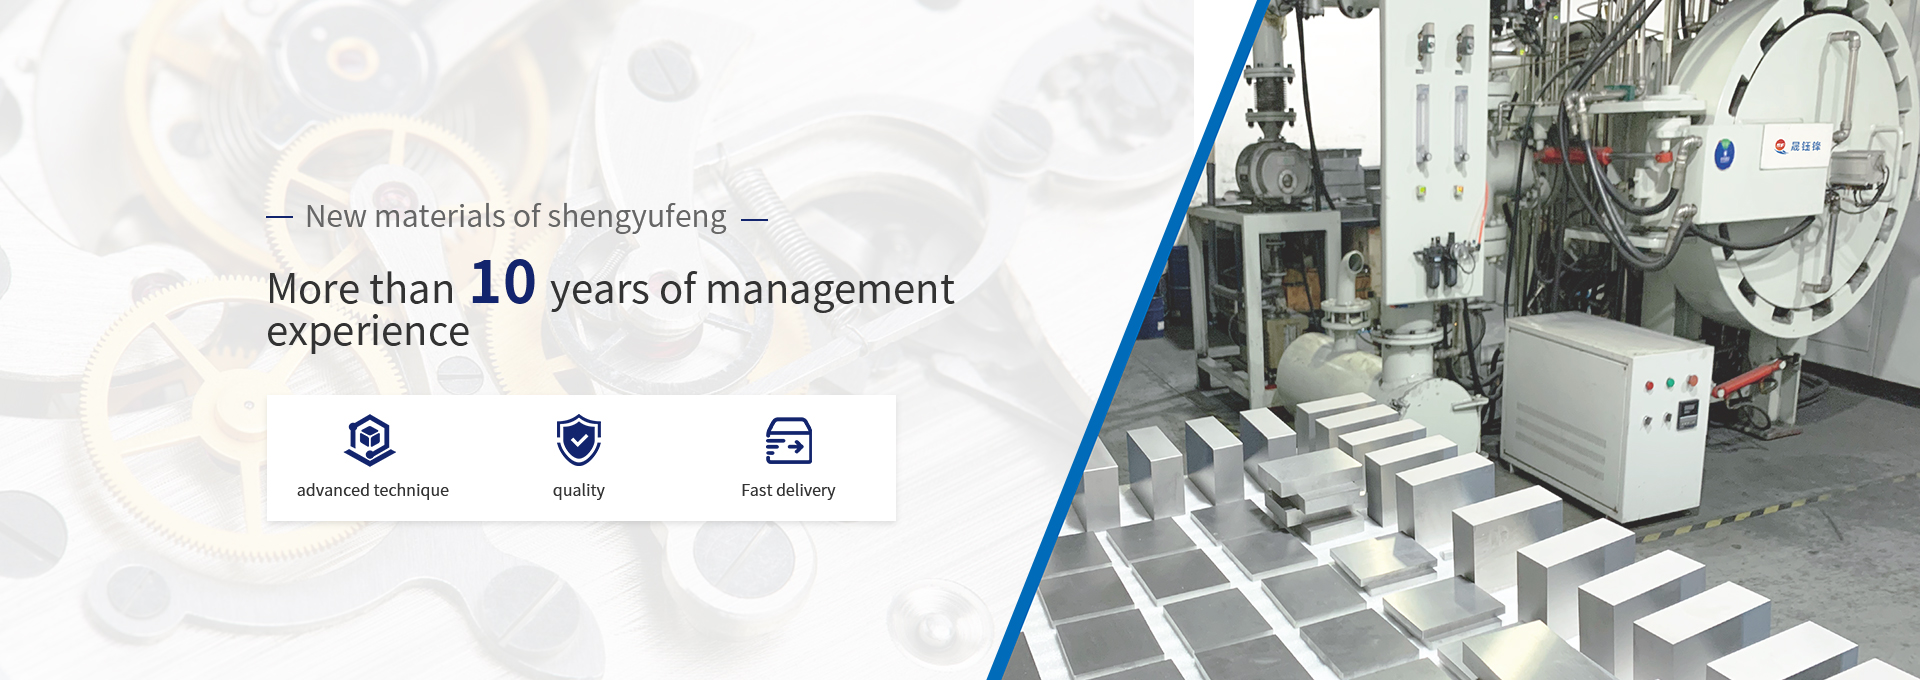 Alloy new material manufacturers